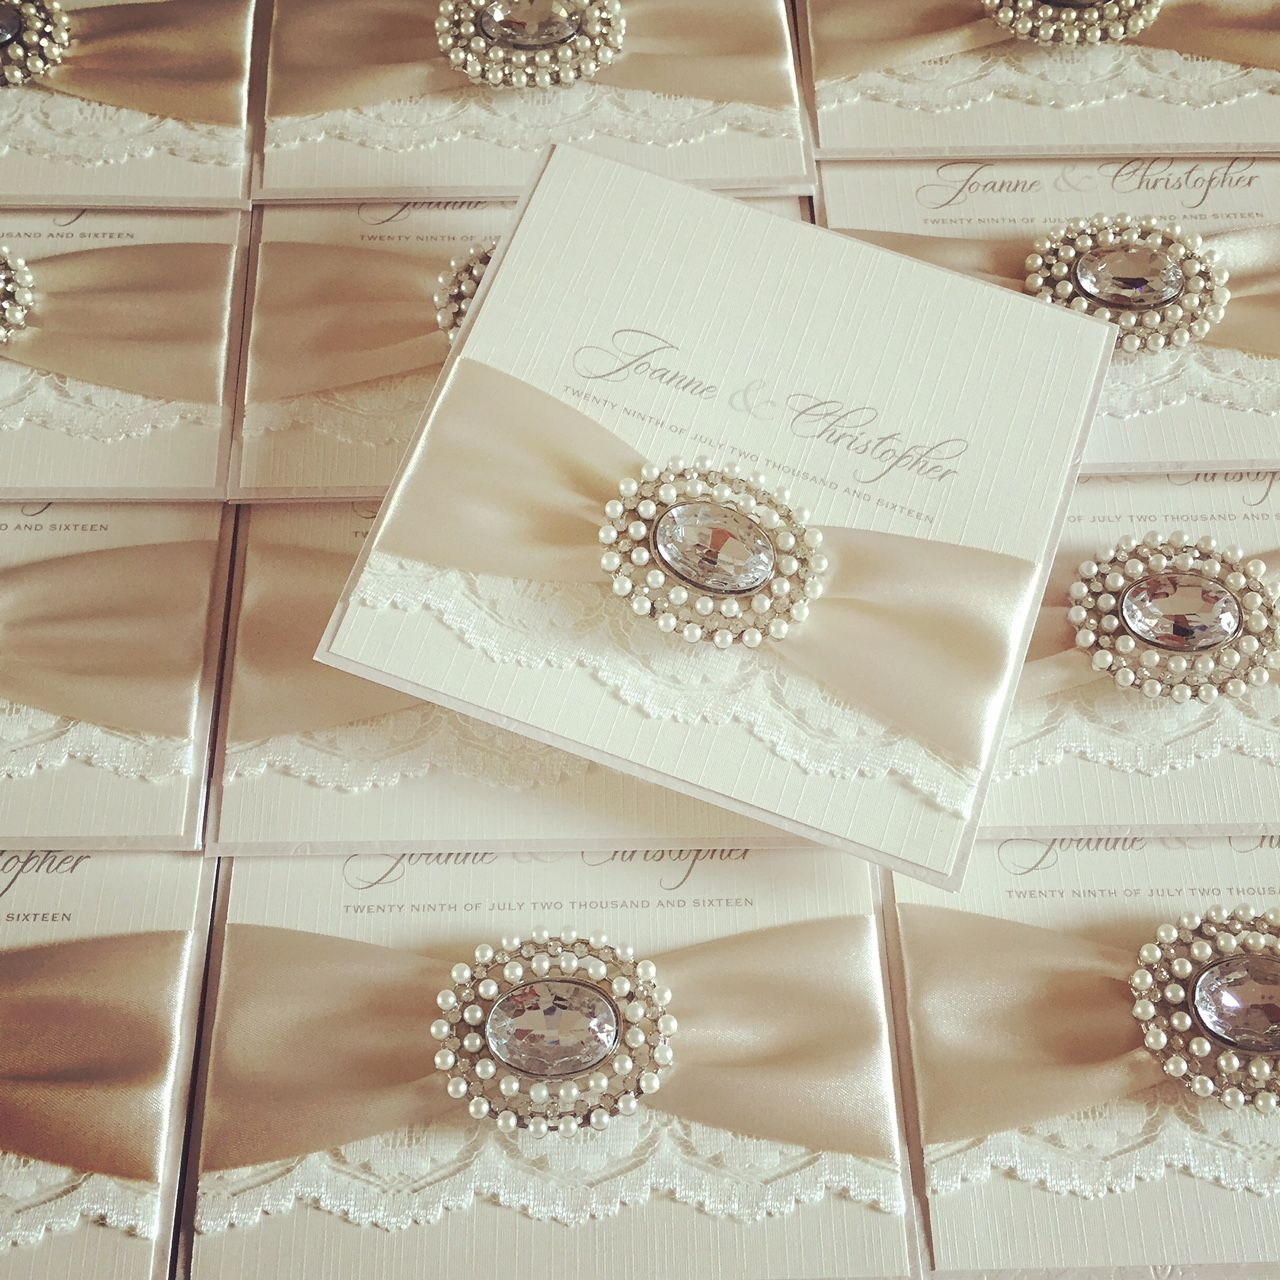 Lace wedding invitations with pearls